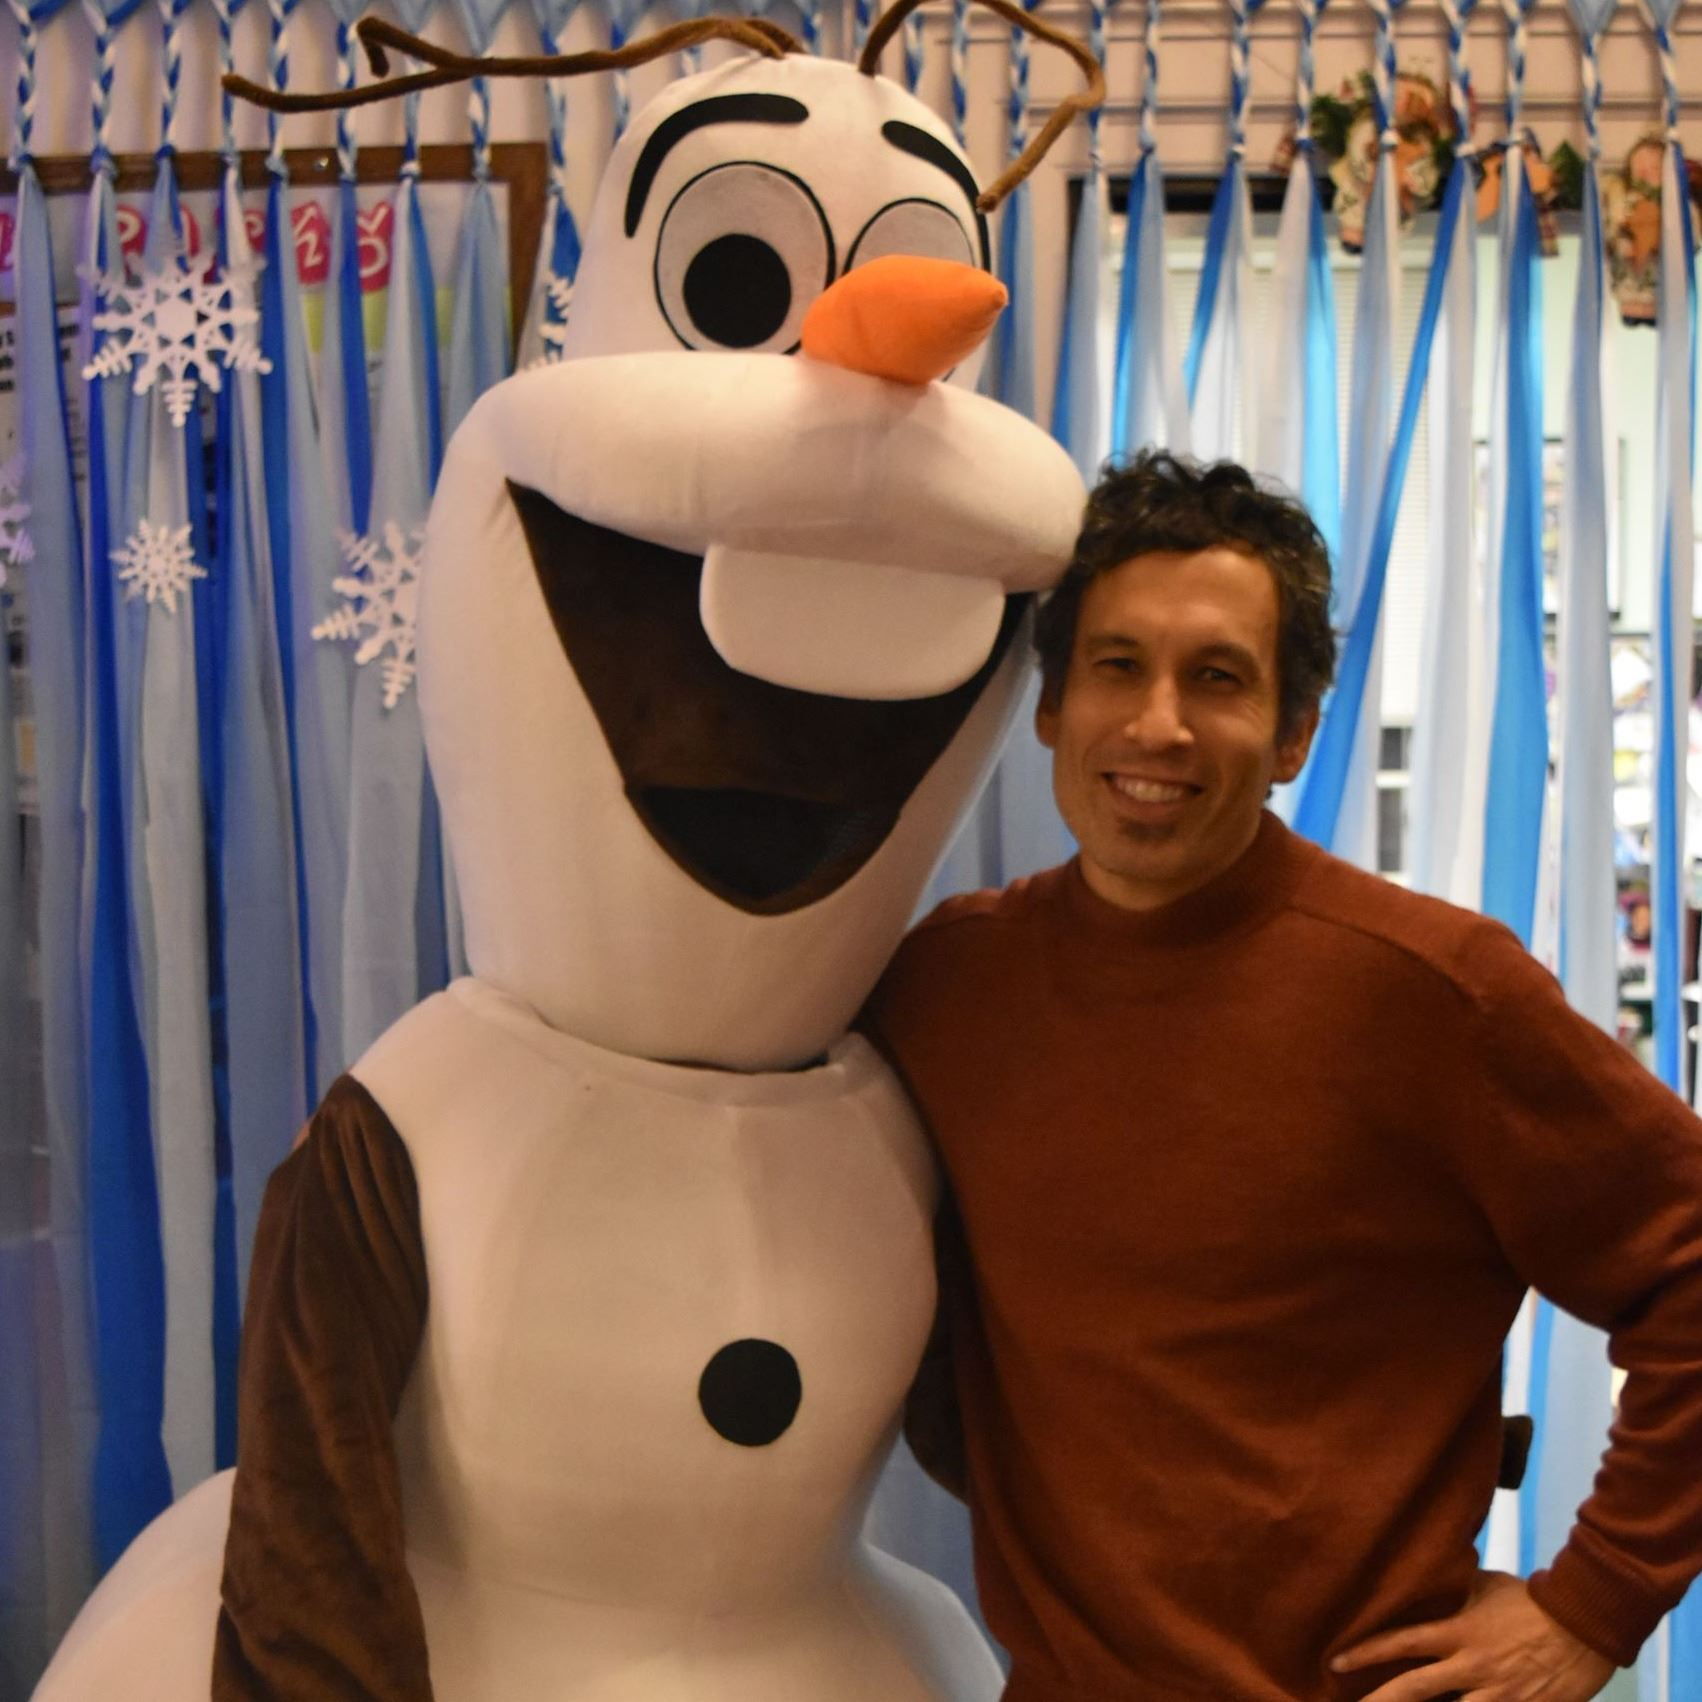 paul and olaf